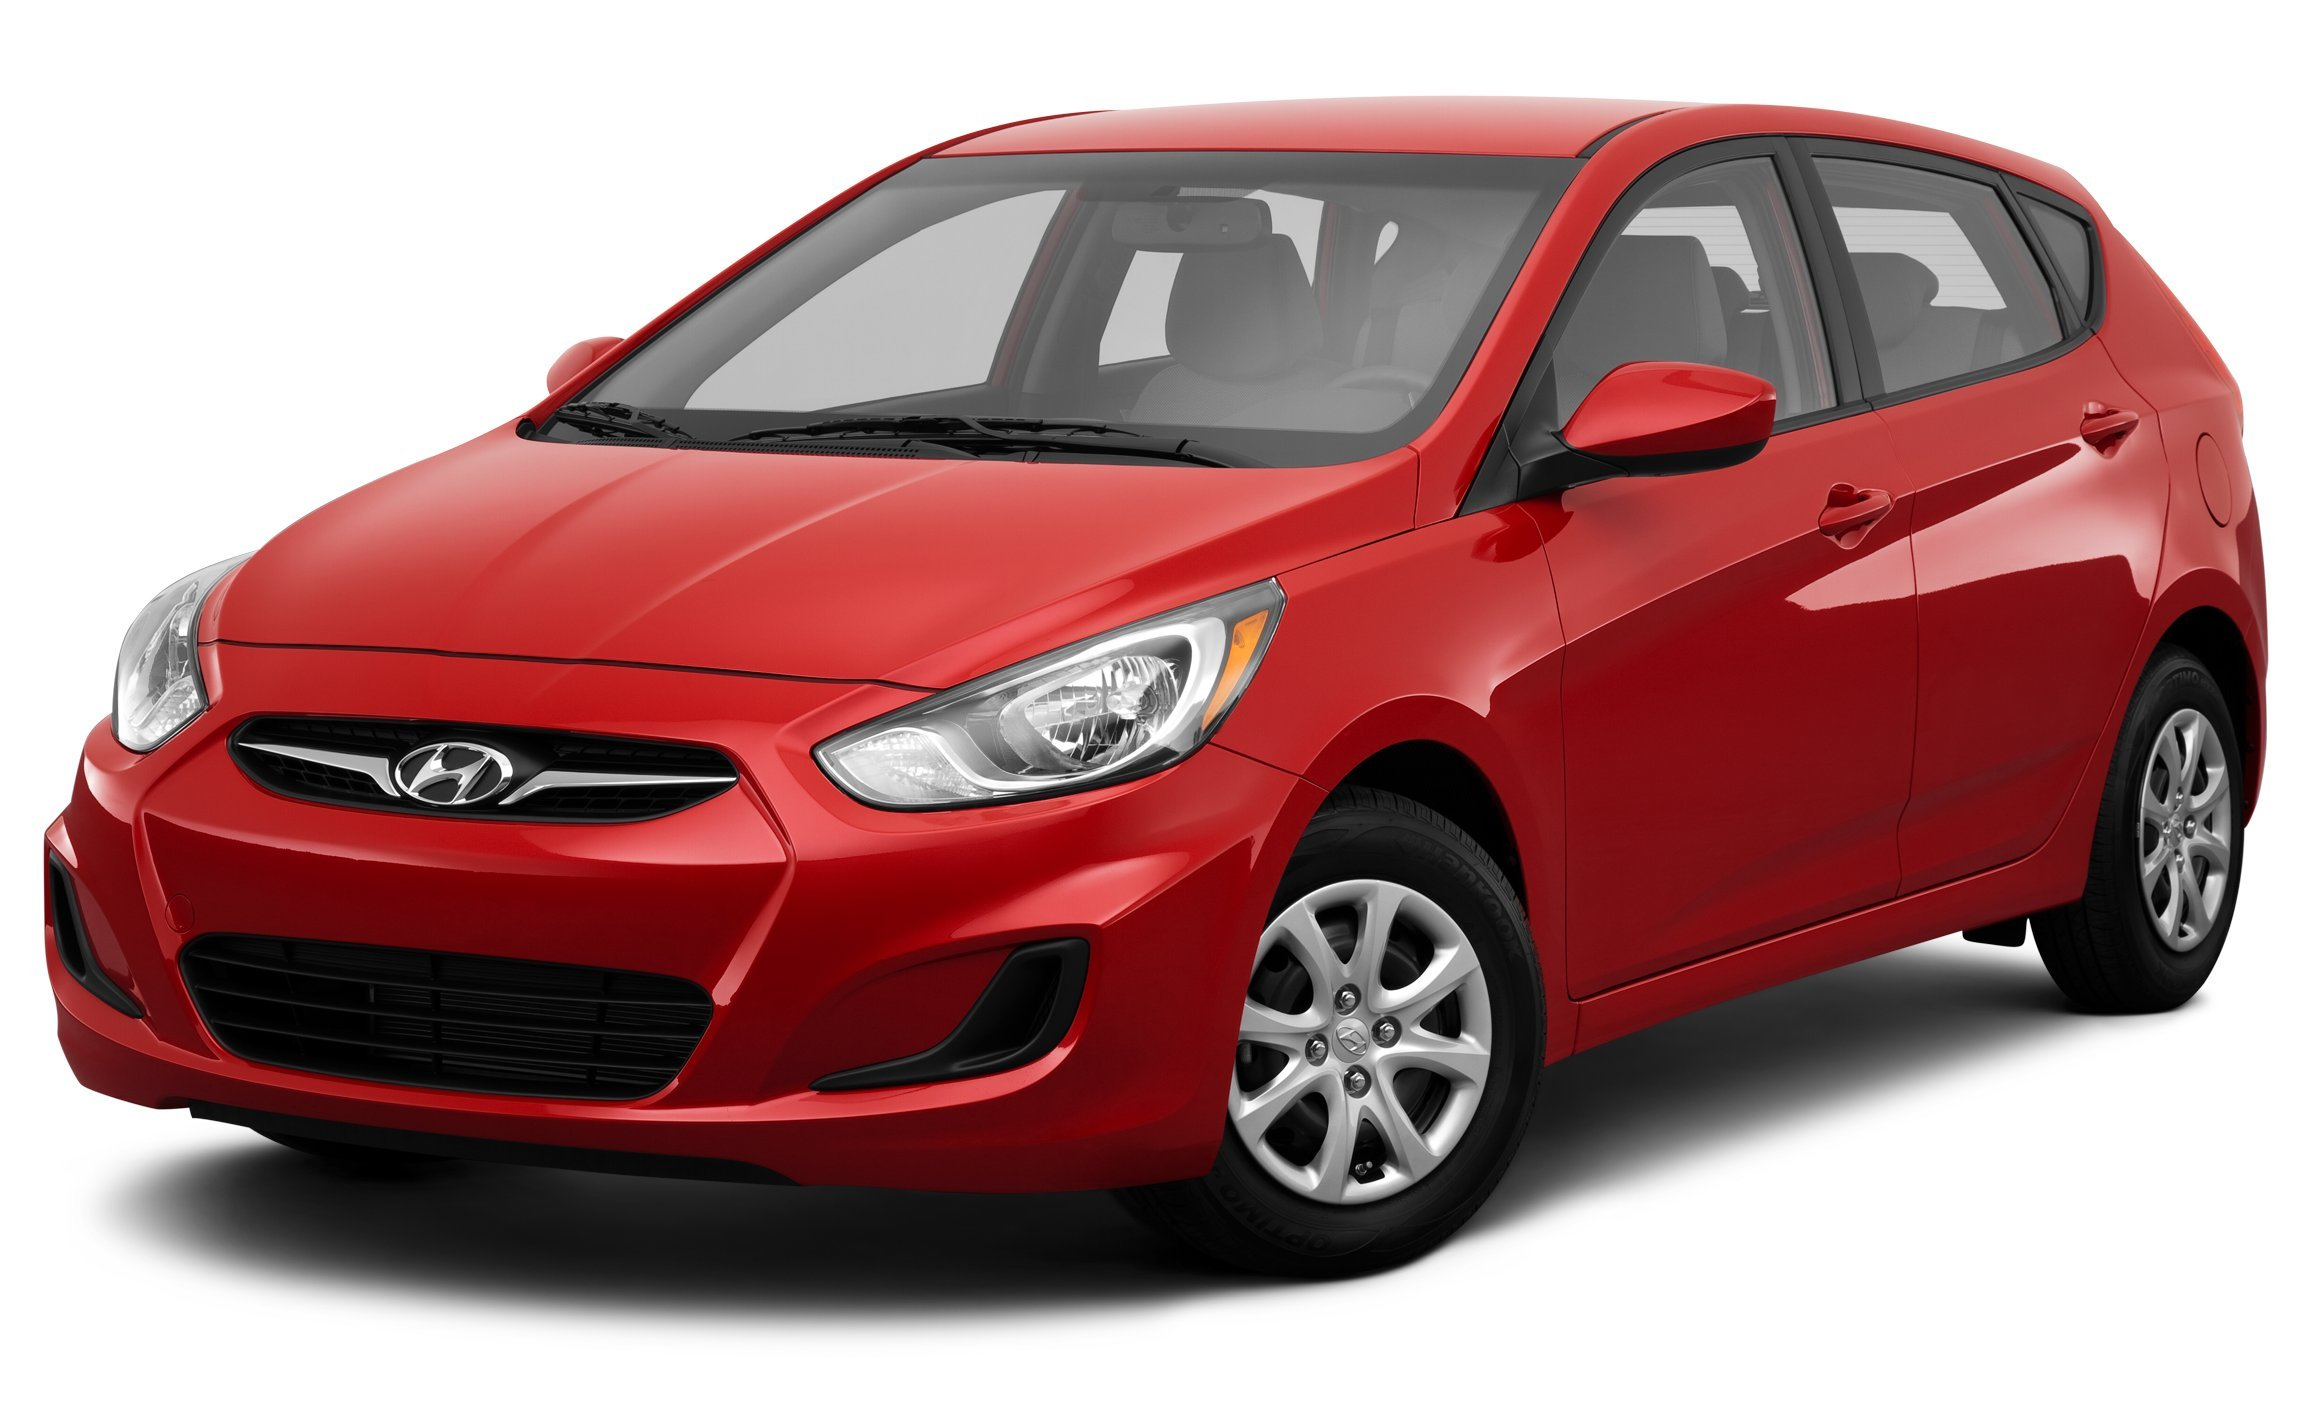 Amazon 2013 Hyundai Accent Reviews and Specs Vehicles